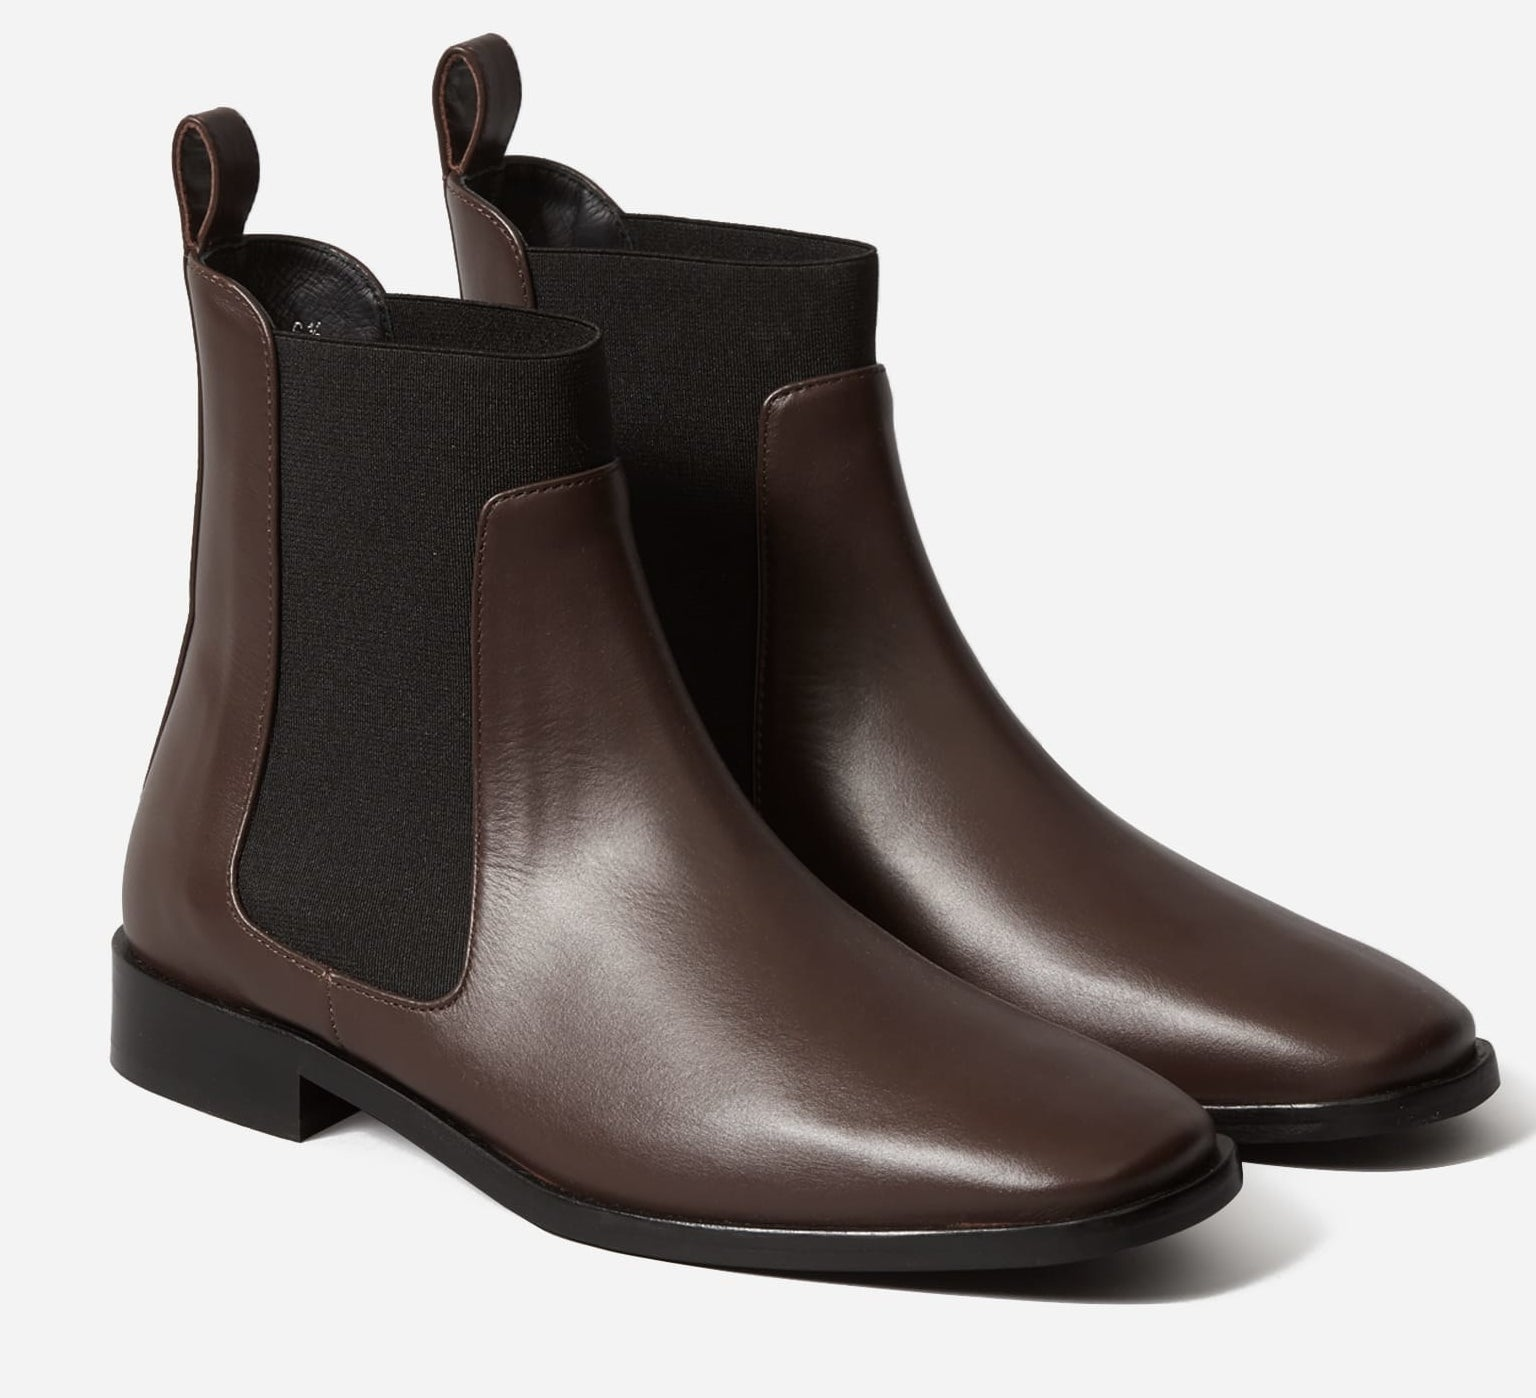 the brown and black boots